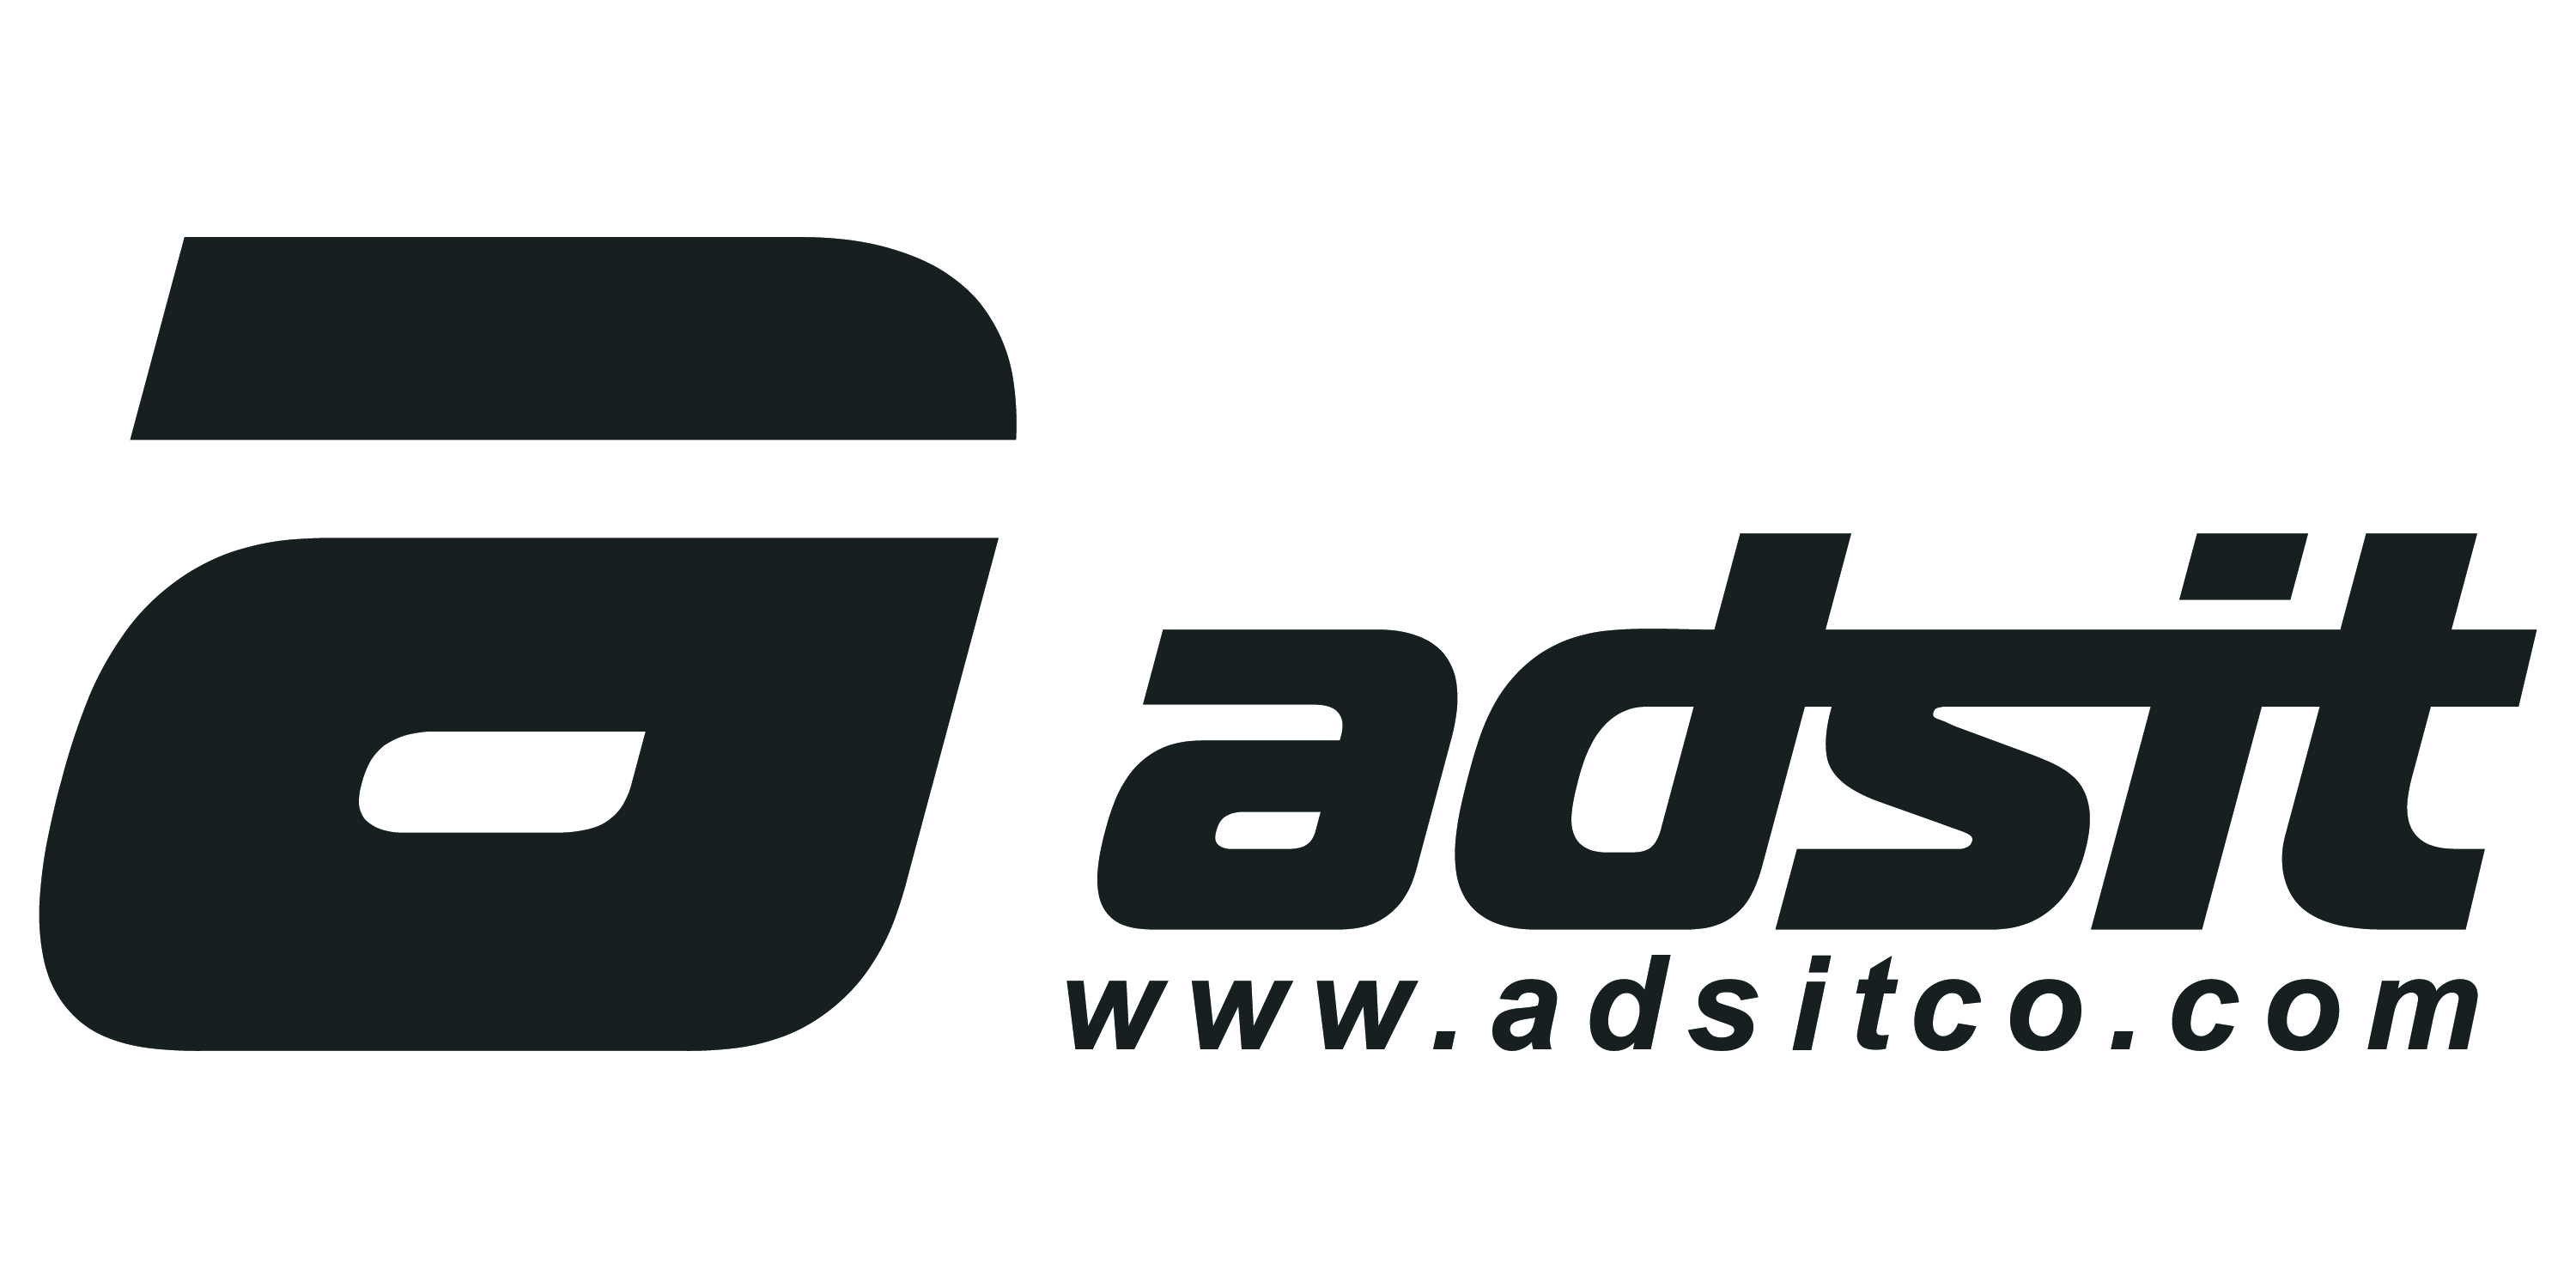 2014 Engine Parts For Sale - C250 CGI - Adsit Company